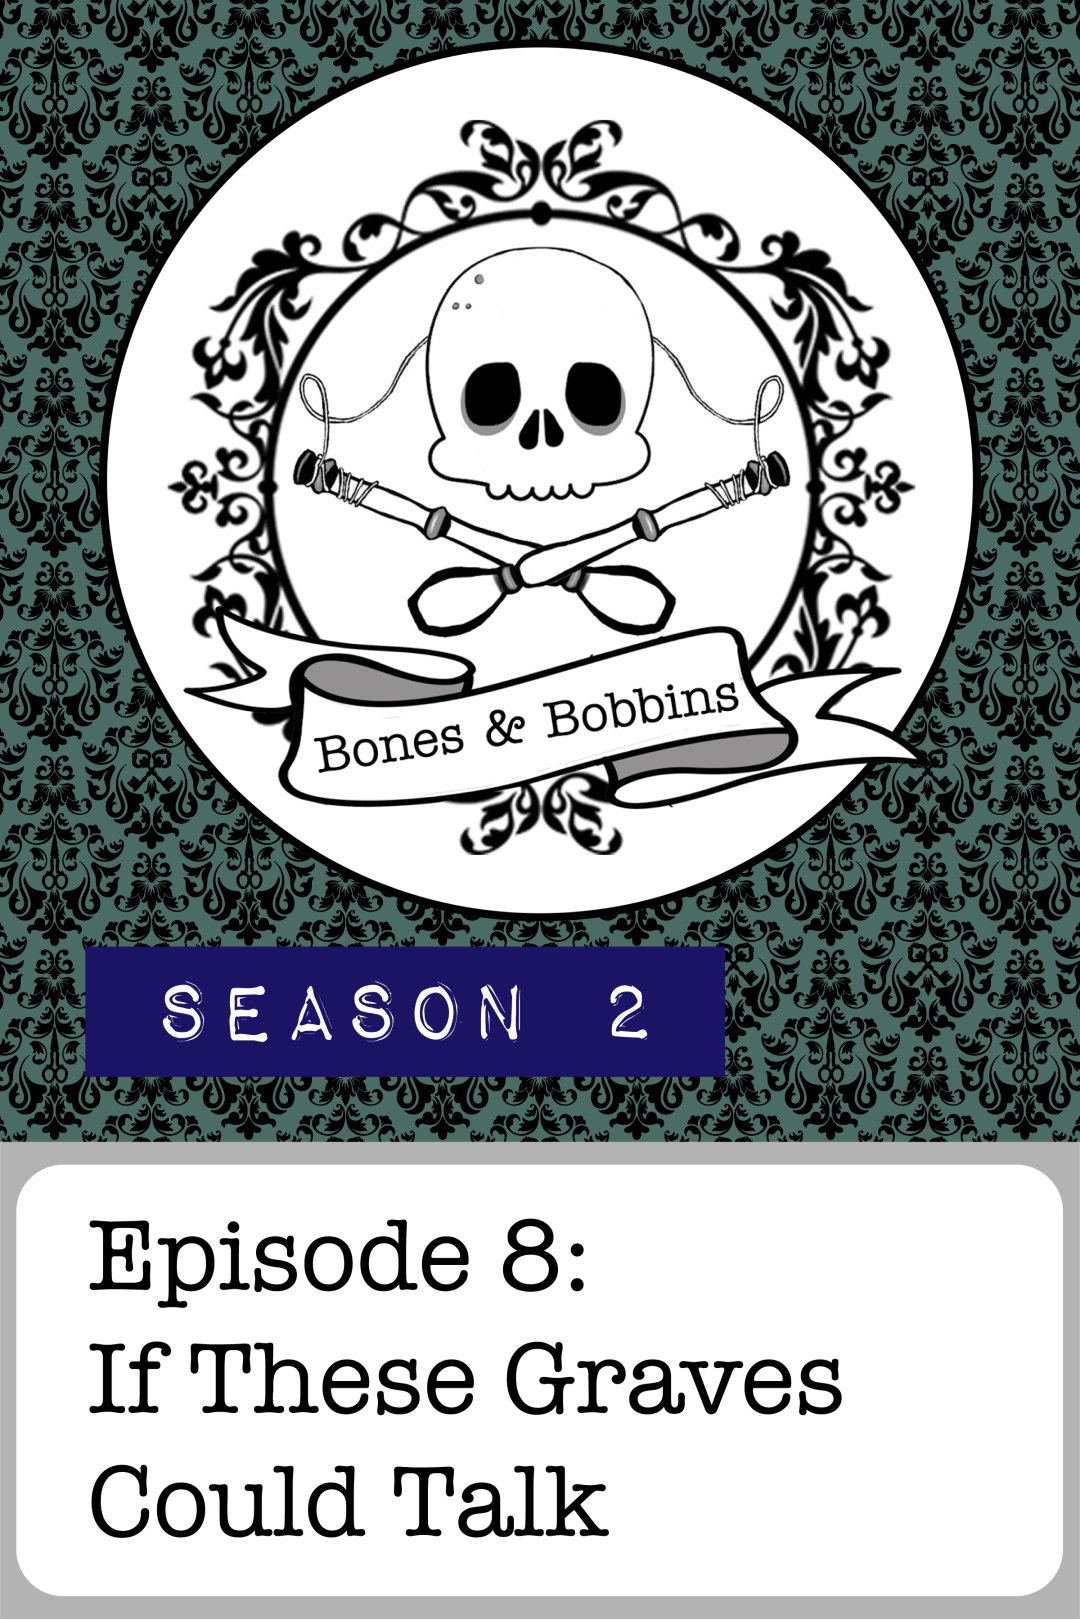 The Bones & Bobbins Podcast, Season 2, Episode 08: If These Graves Could Talk